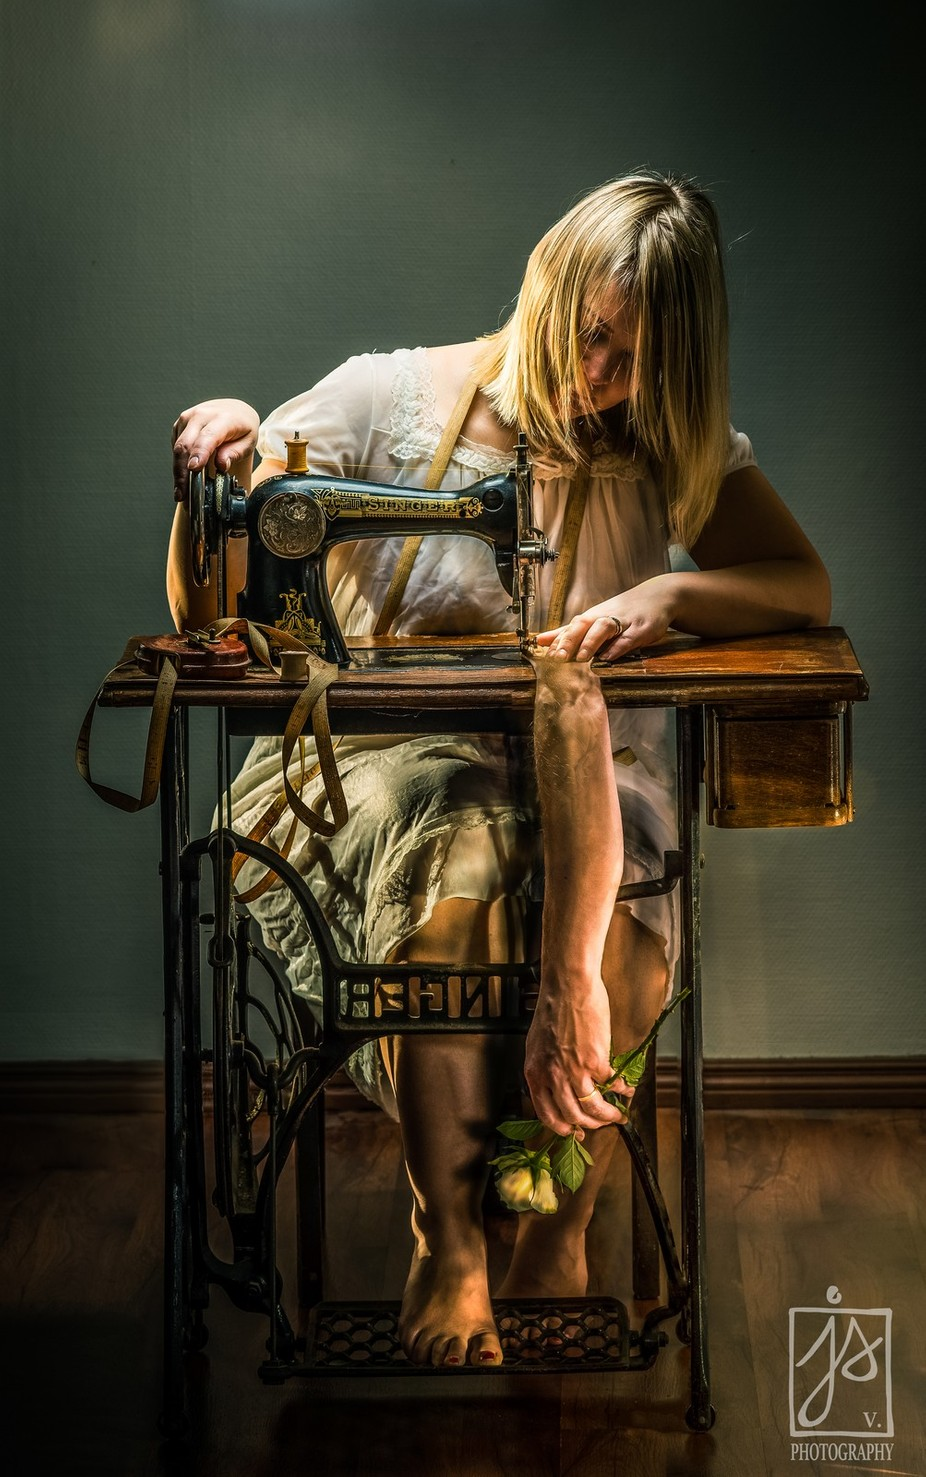 Sewing Her Dream by juhamattivahdersalo - Getting Creative Photo Contest